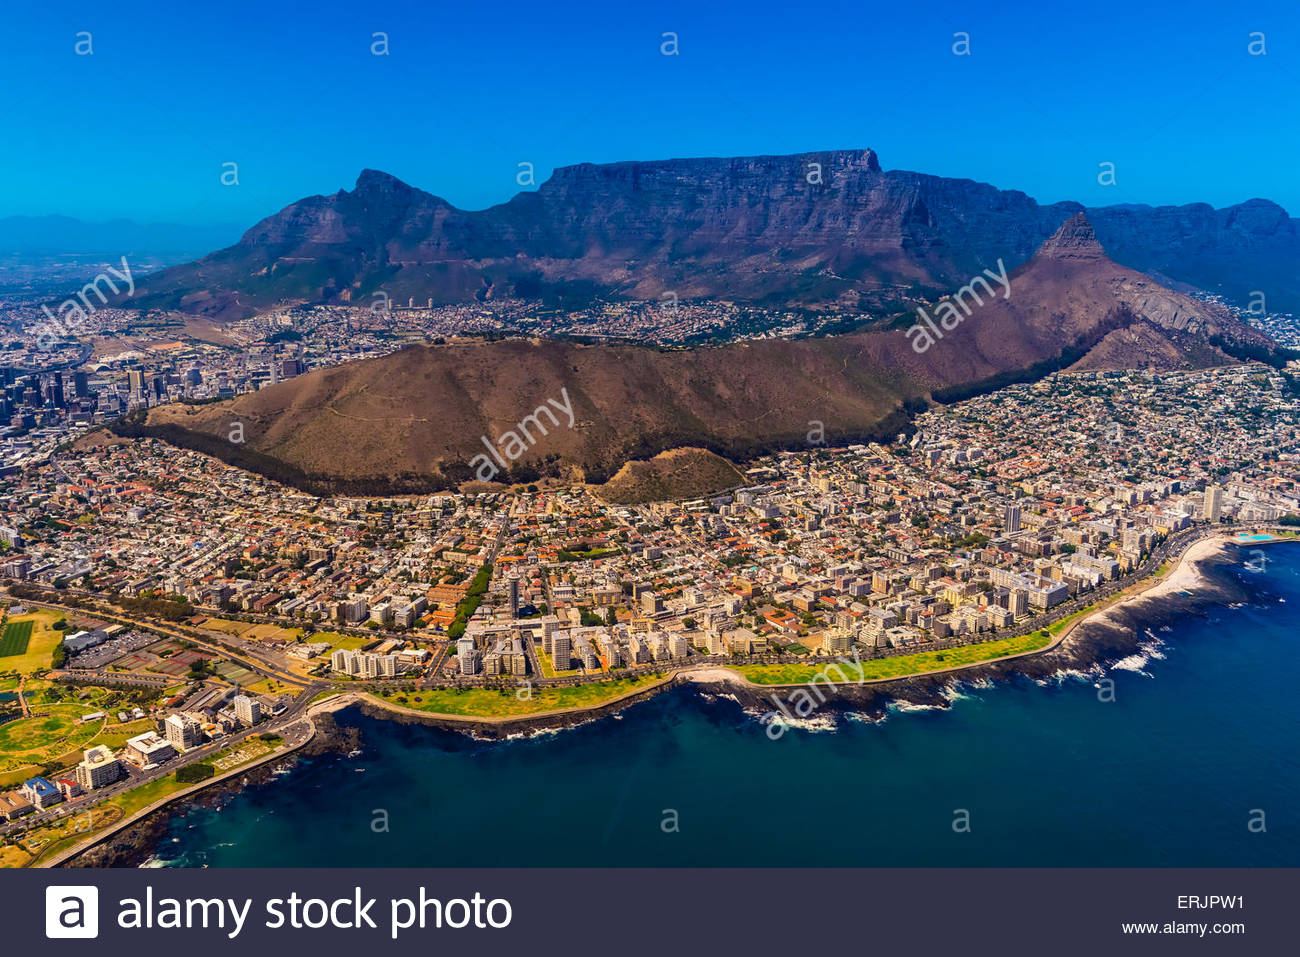 Aerial view of coastline of Cape Town with Signal Hill and Table Mountain in background, South Africa. - Stock Image